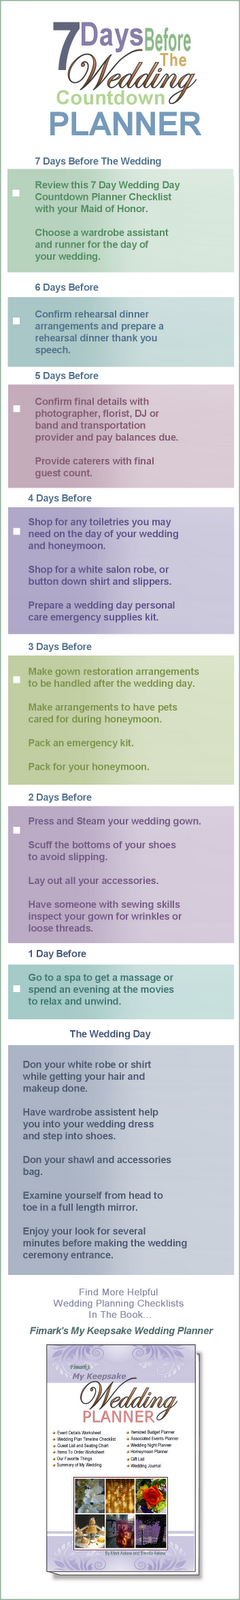 Printable 7 Day Wedding Countdown Checklist Bookmark With 10 Diy Bridal Gift Uses 1 Iron It On A Commemorative T Shirt 2